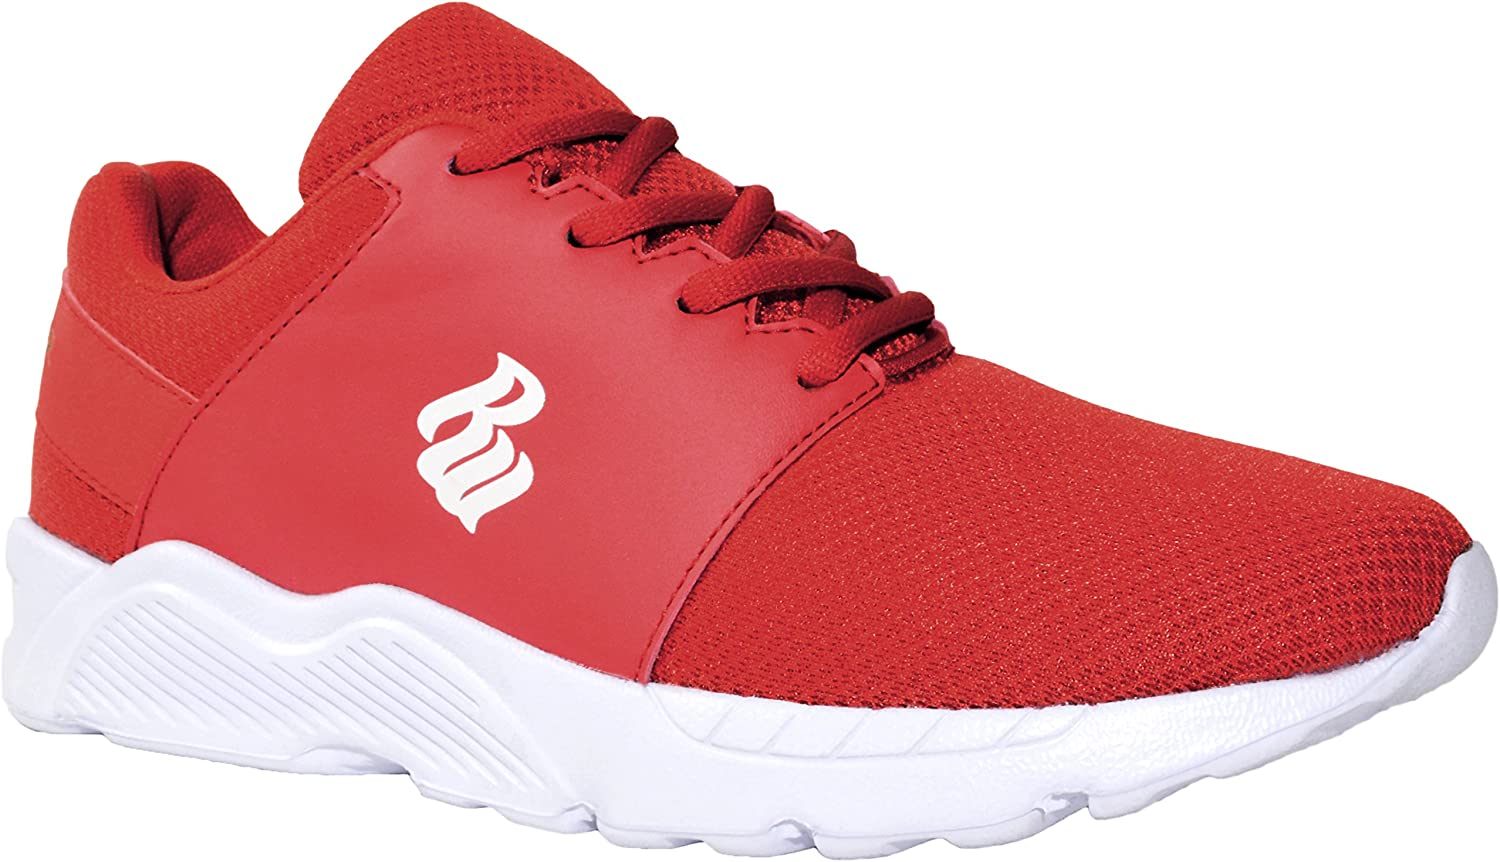 Rocawear shoes, Sneakers for Men Athletic shoes; Cool Montpink Joggers EVA Sole